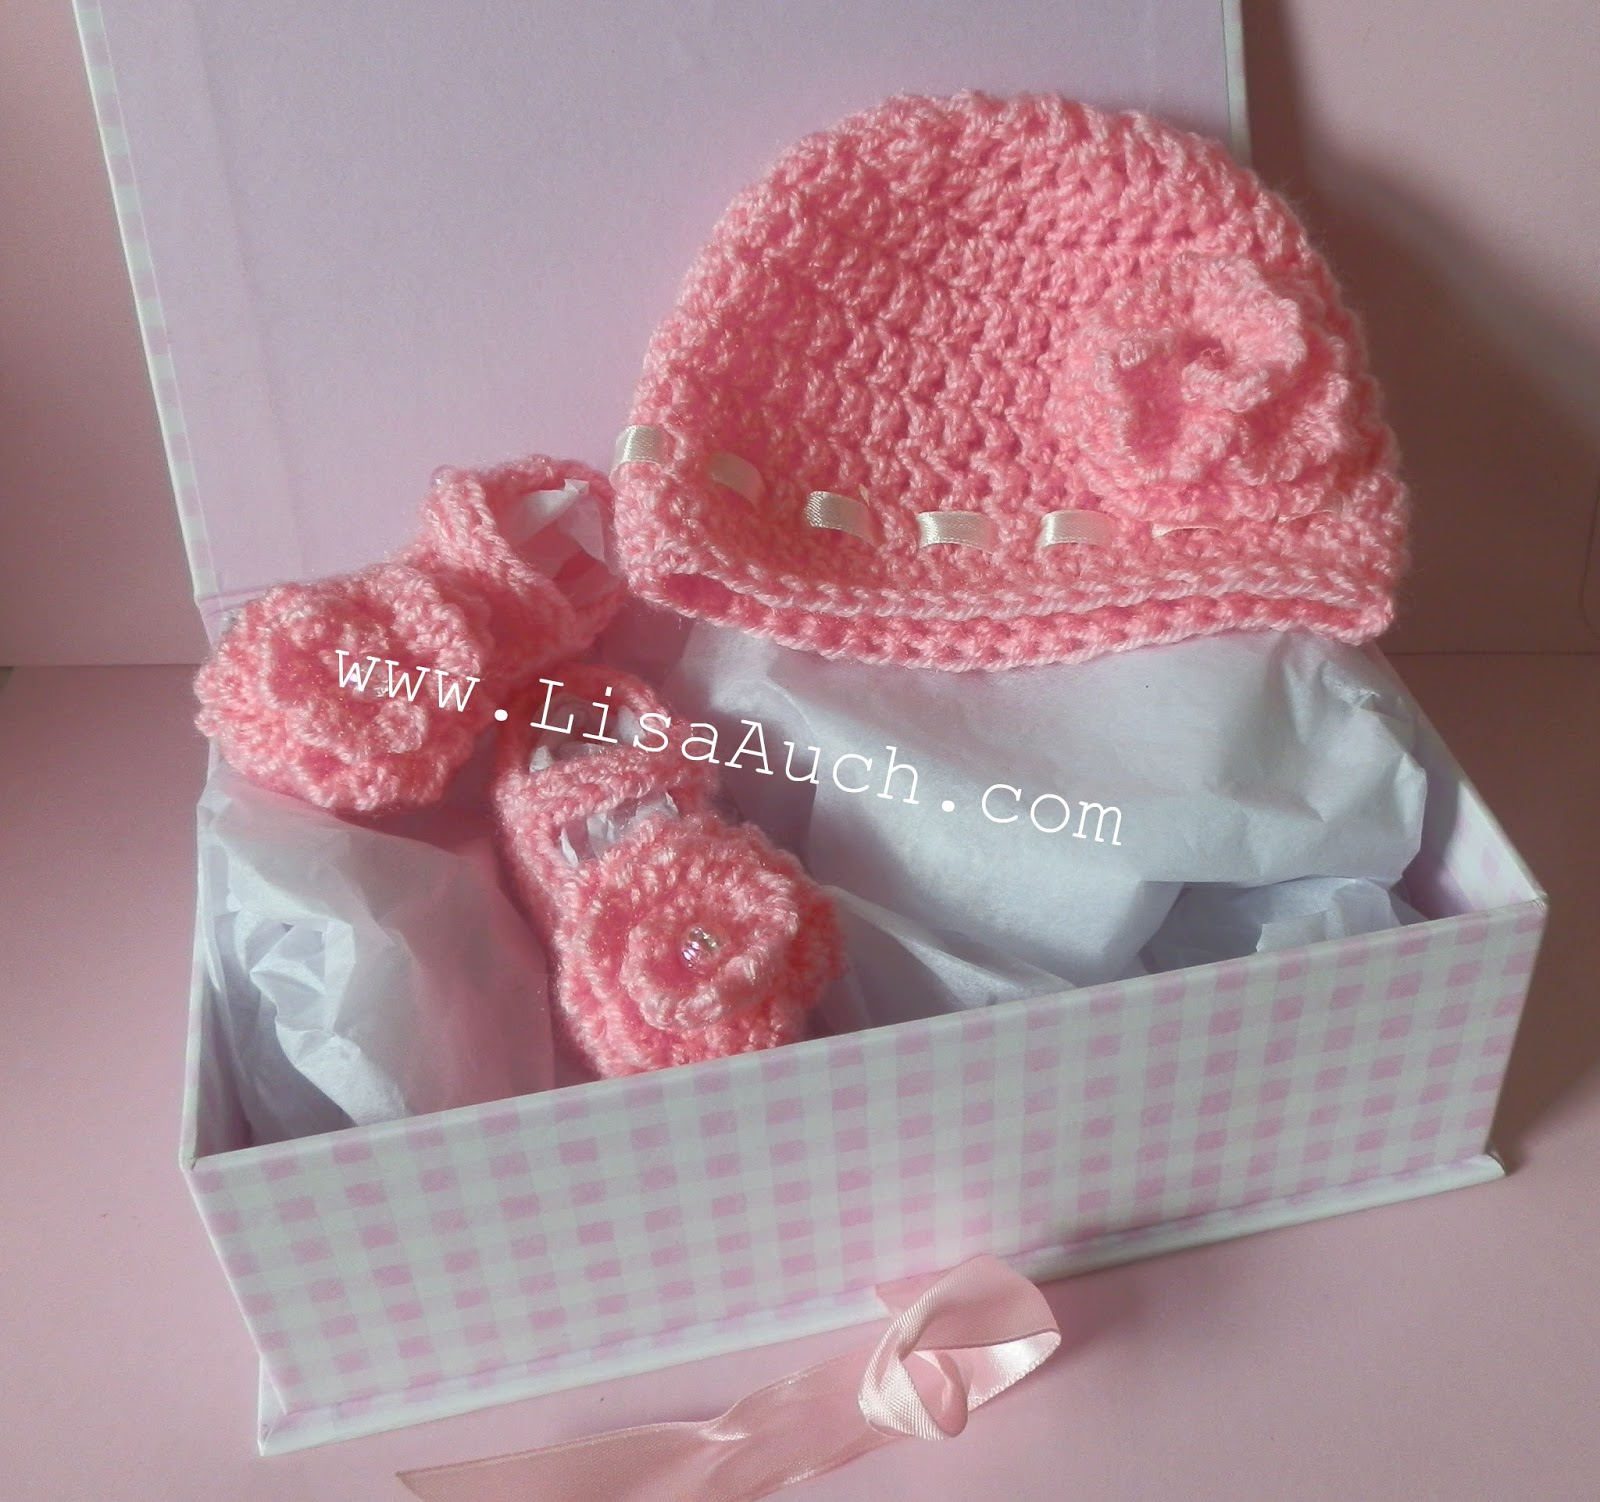 Crochet Pattern Newborn Girl Hat : Need Some patterns for baby set